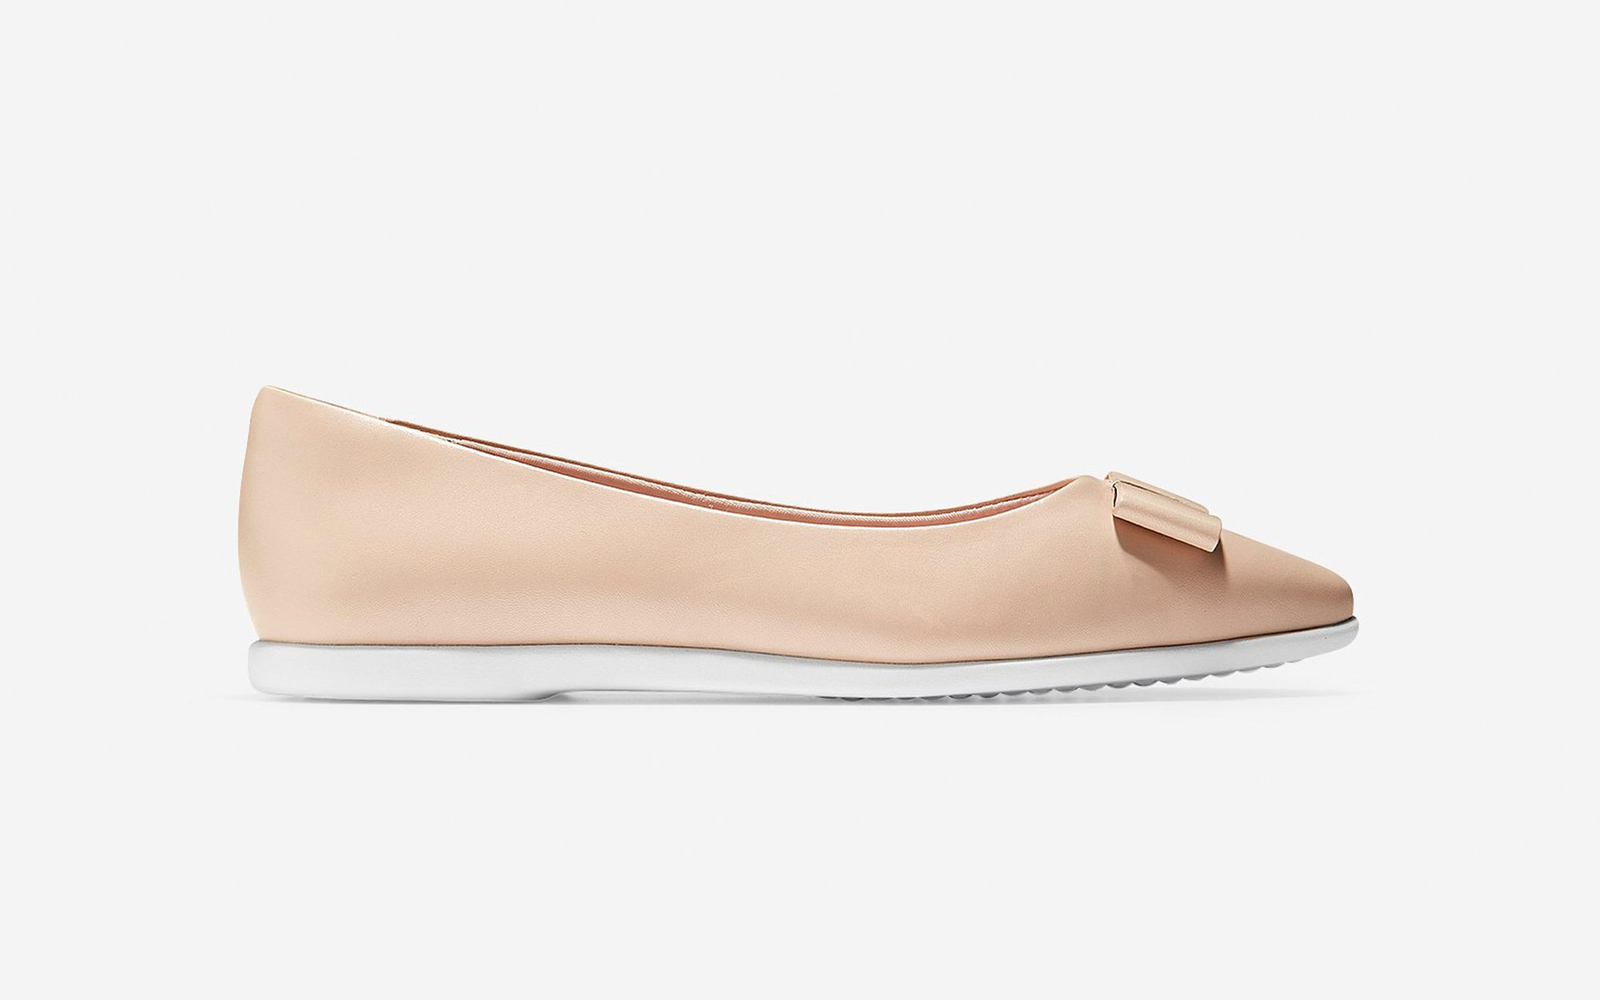 Cole Haan Bow Skimmer Flat in Shifting Sand/Optic White